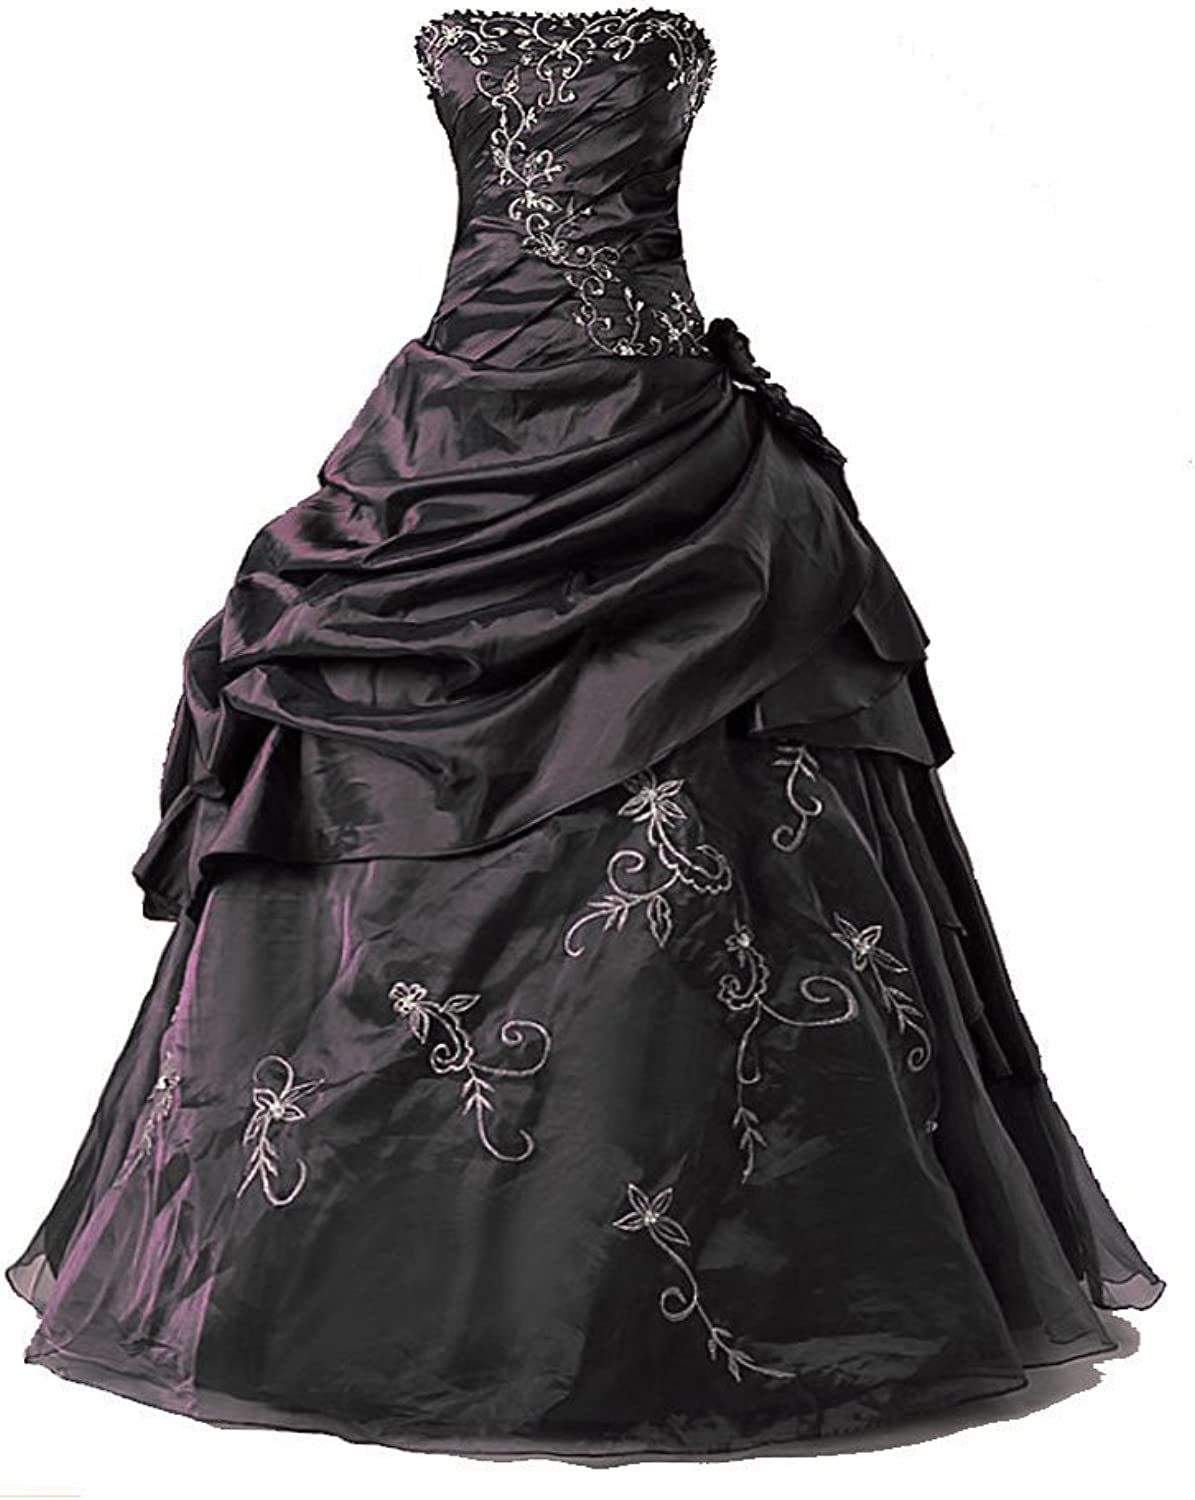 Vantexi Women's Silver Embroidery Beaded Princess Evening Ball Gown